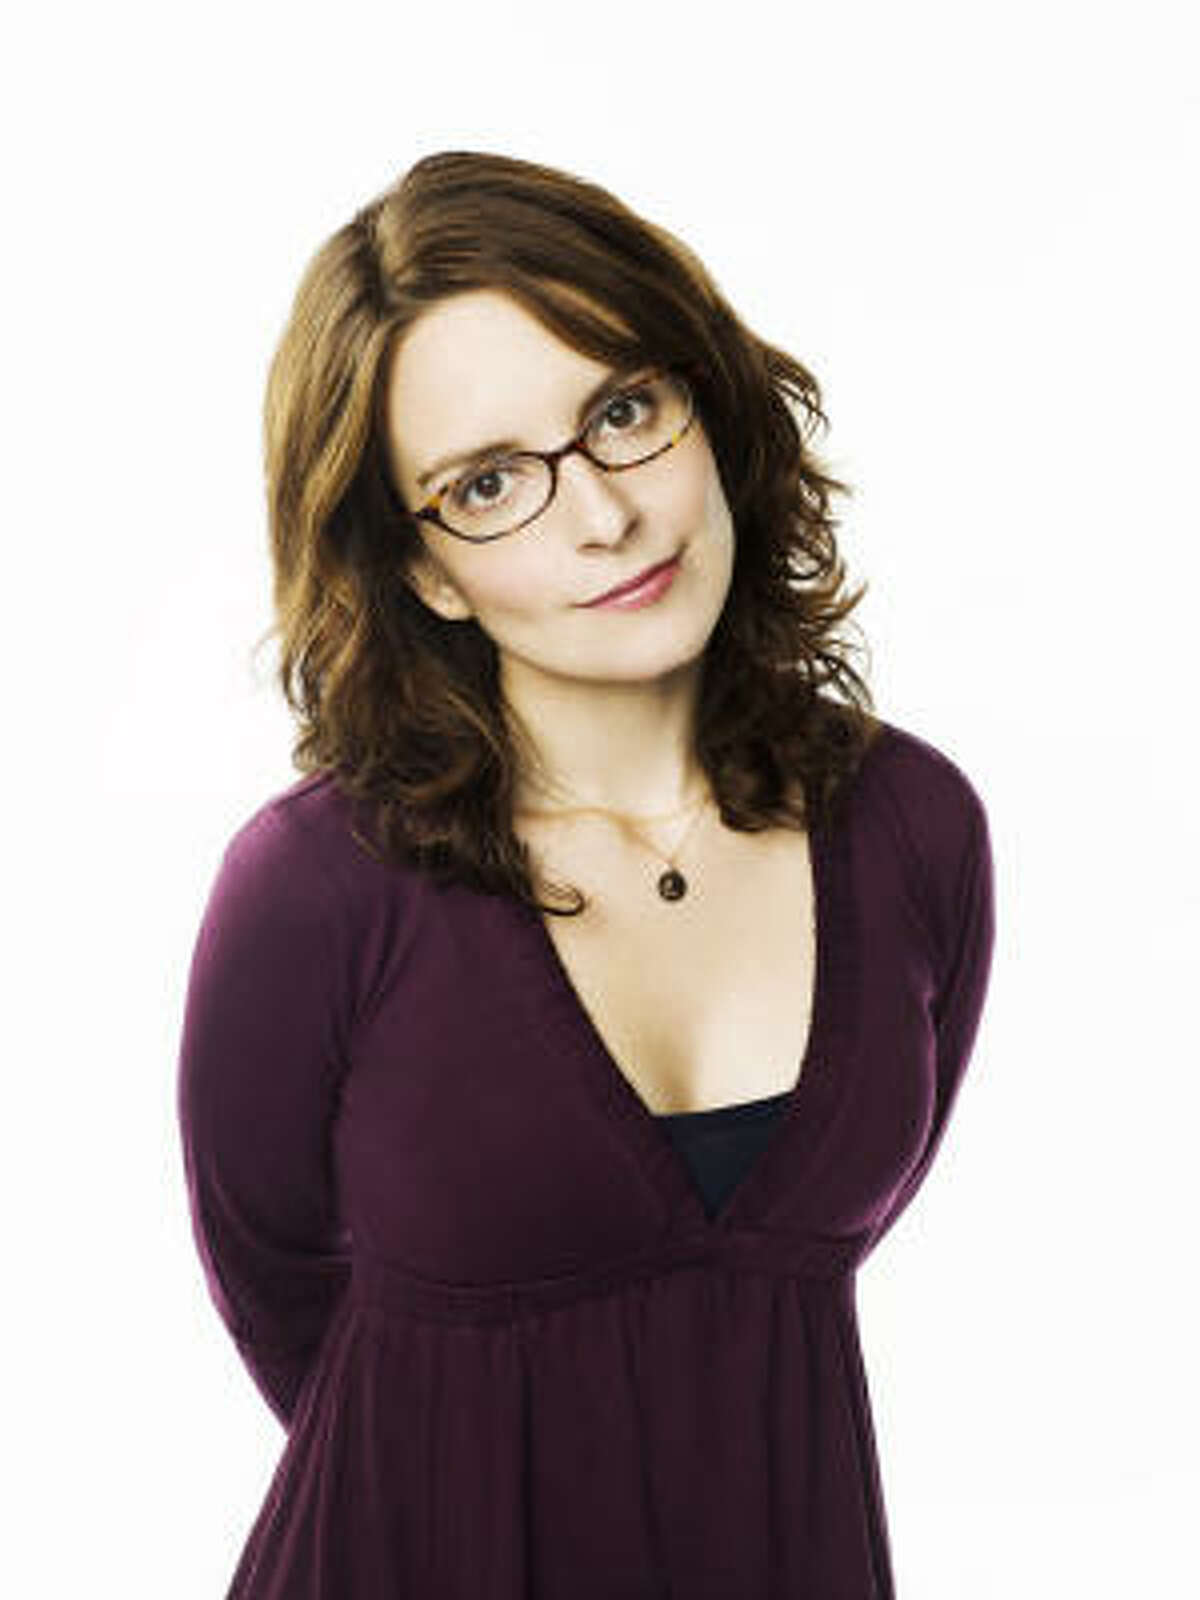 Tina Fey is the writer and producer of 30 Rock and also plays Liz Lemon on the show.